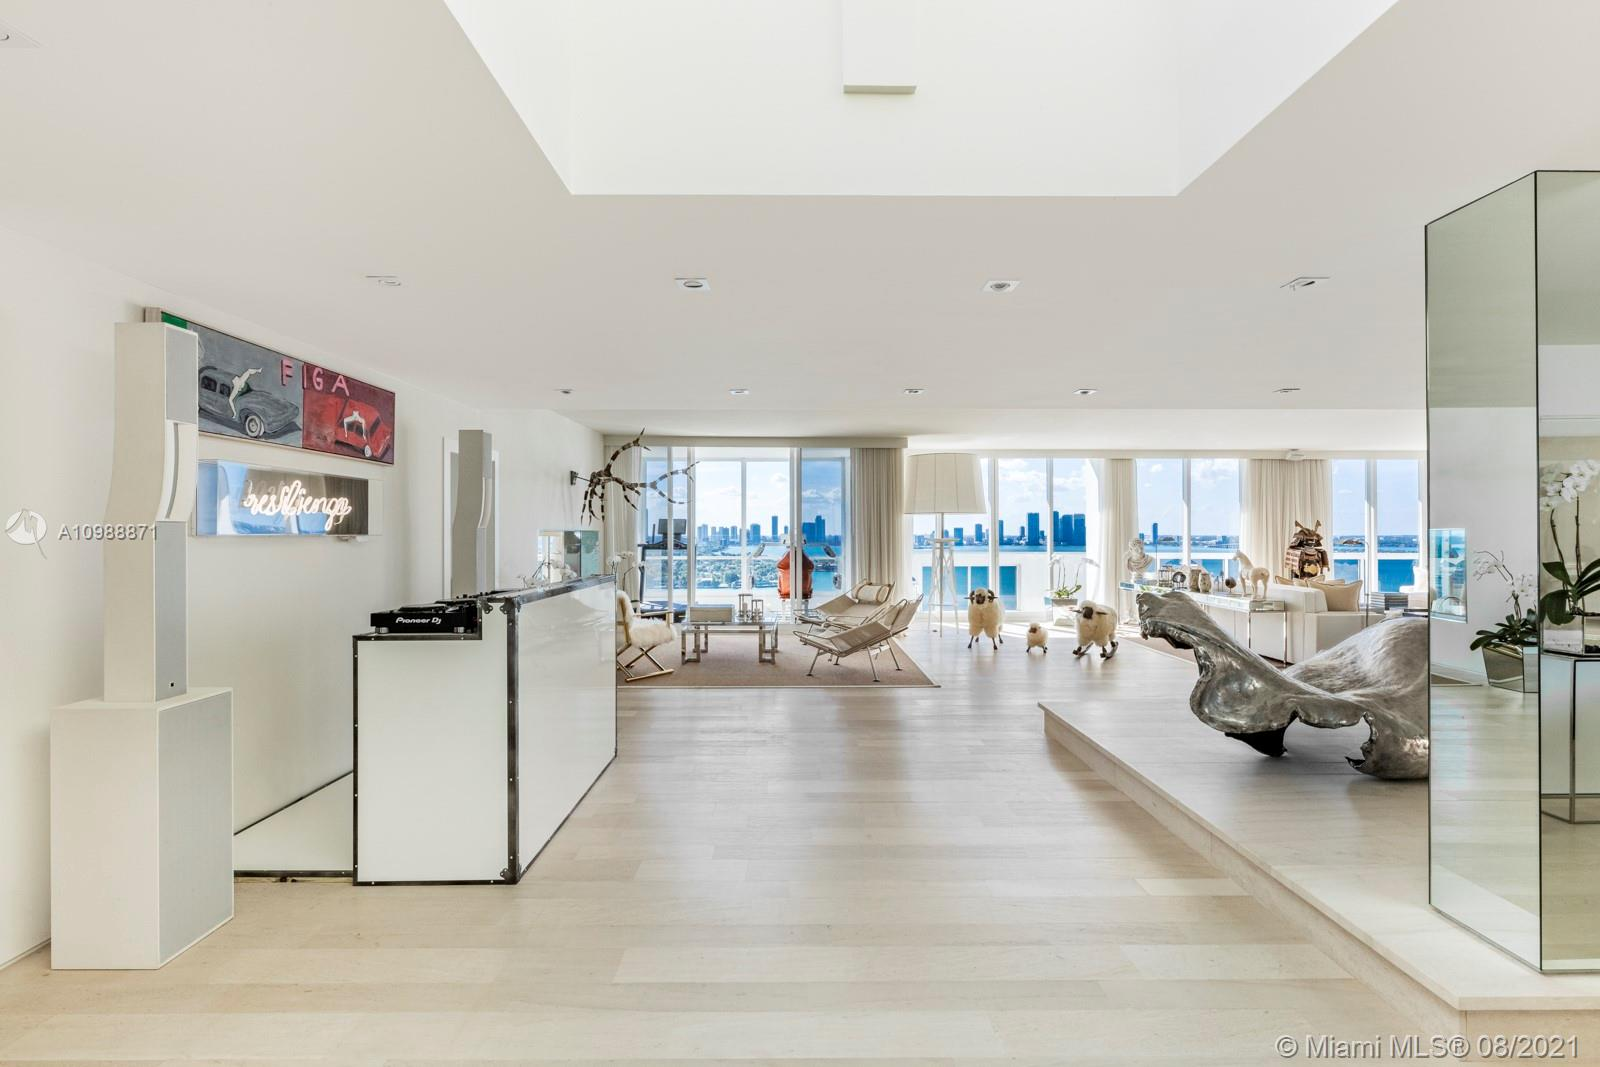 Sunset Harbour South #TS-2/3 - 1800 Sunset Harbour Dr #TS-2/3, Miami Beach, FL 33139